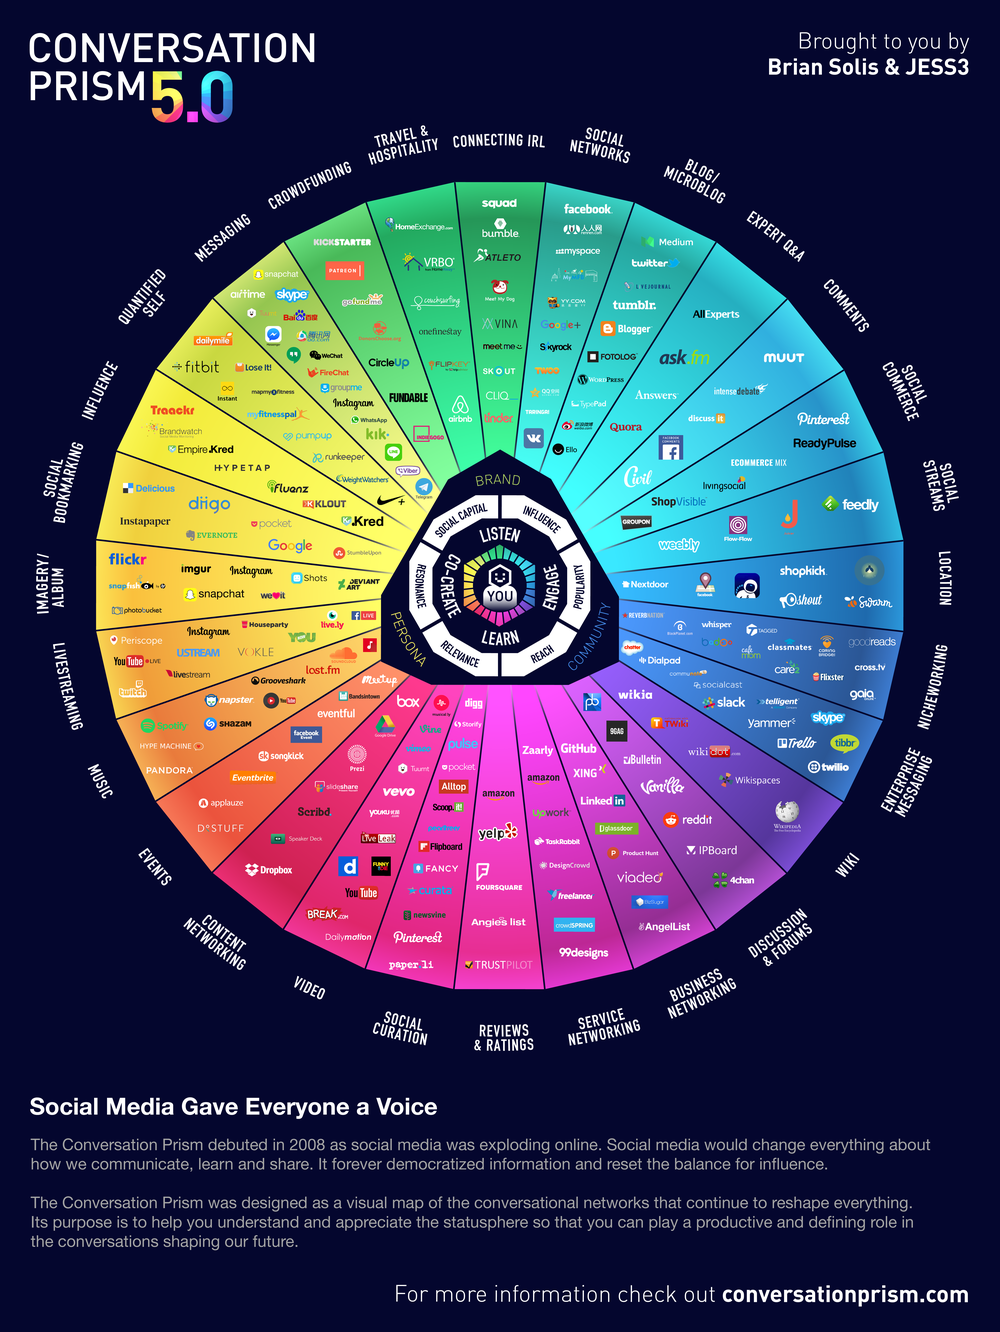 The Conversation Prism 5.0 Portrait